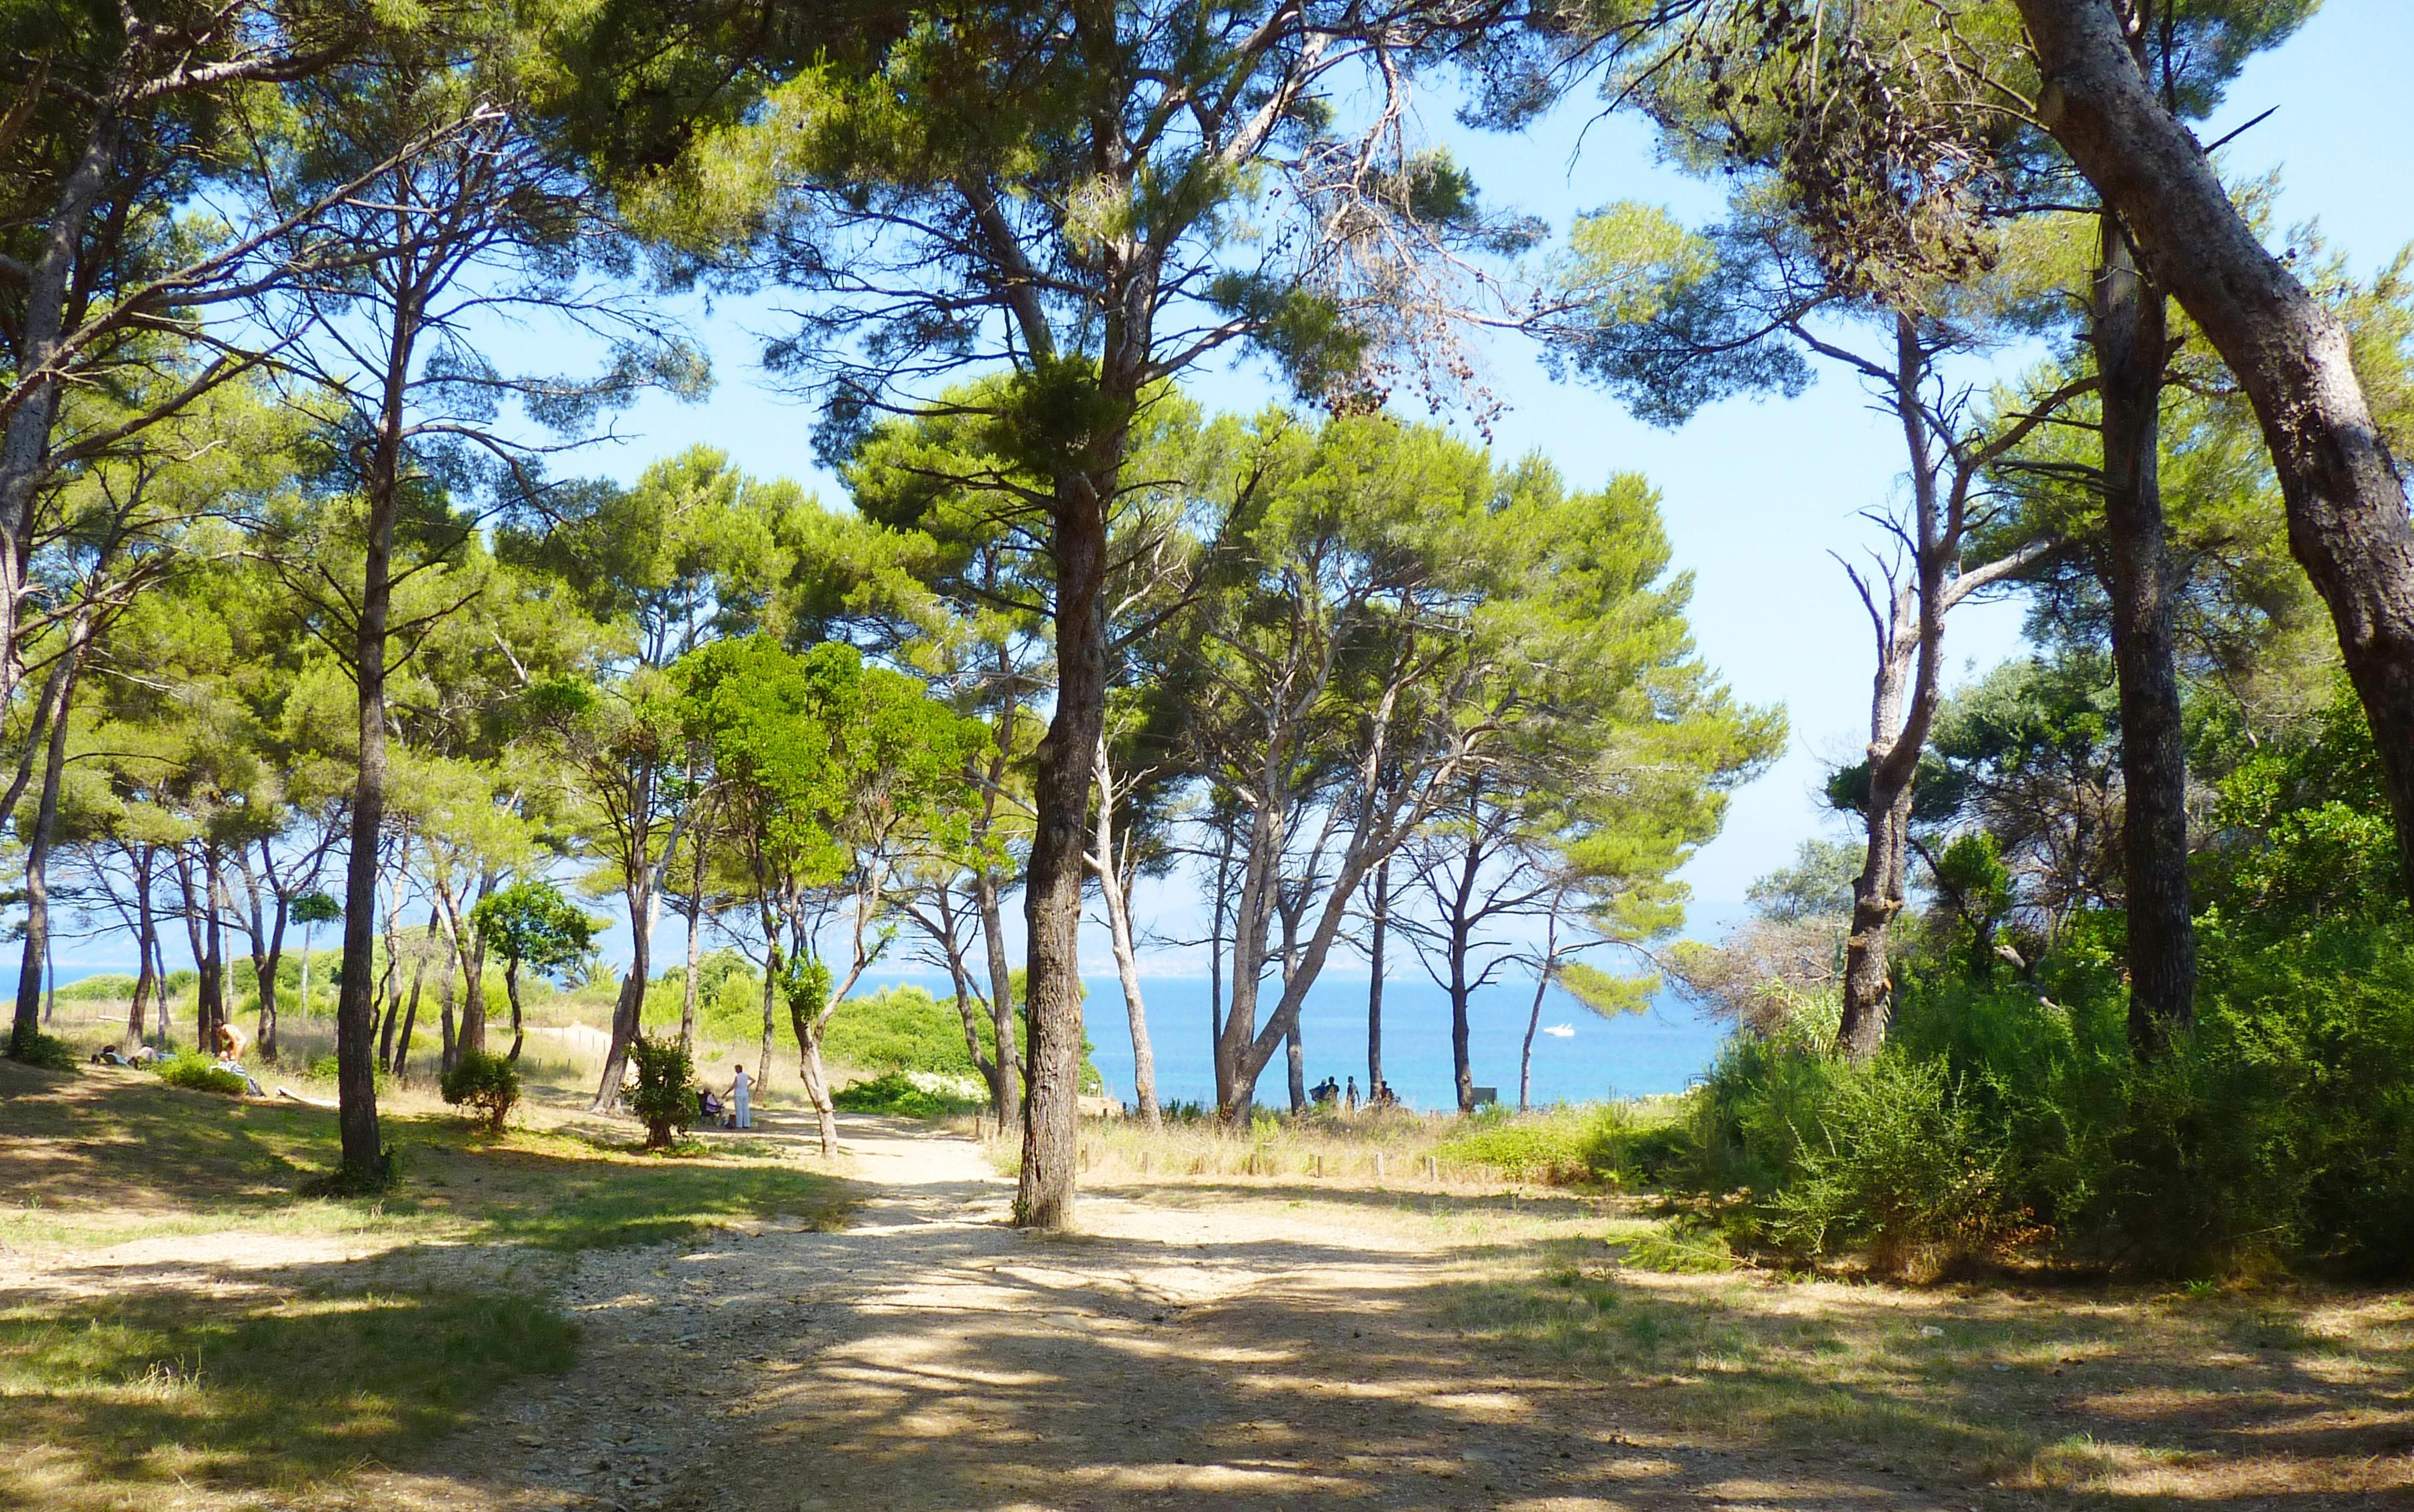 Establishment Camping Olbia - HYERES